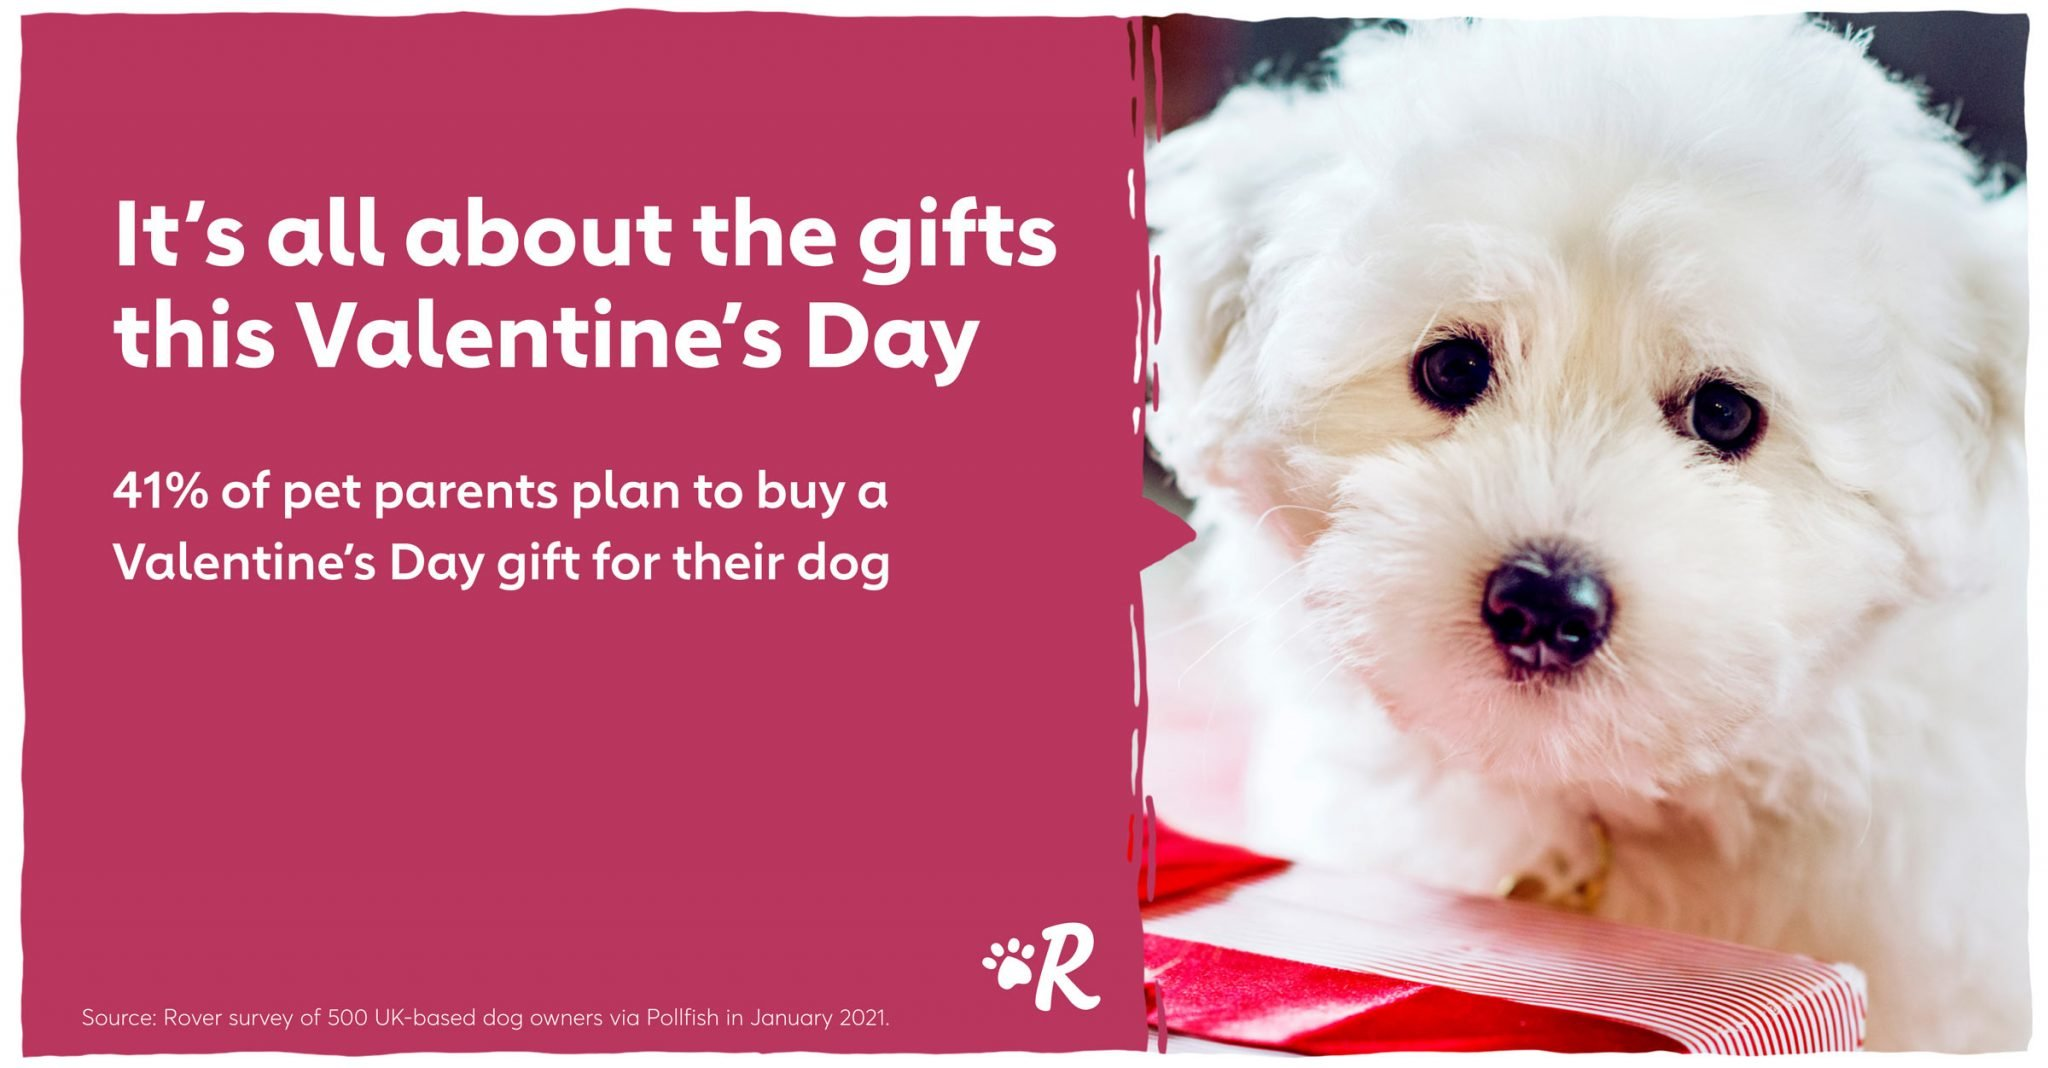 valentines day gift for dog